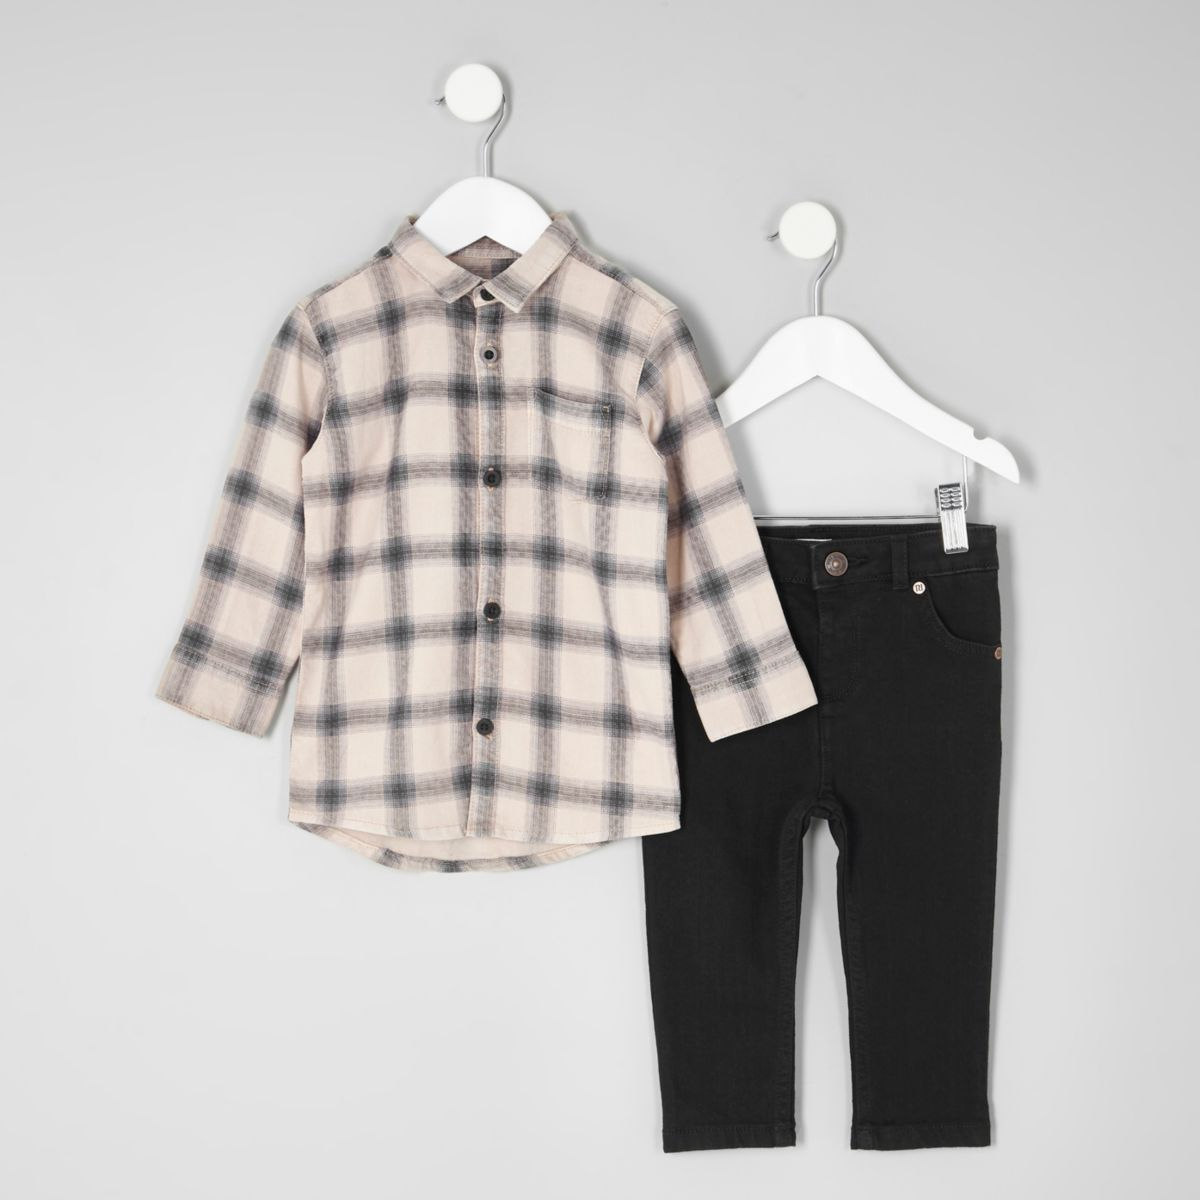 Mini boys check shirt and black jeans outfit